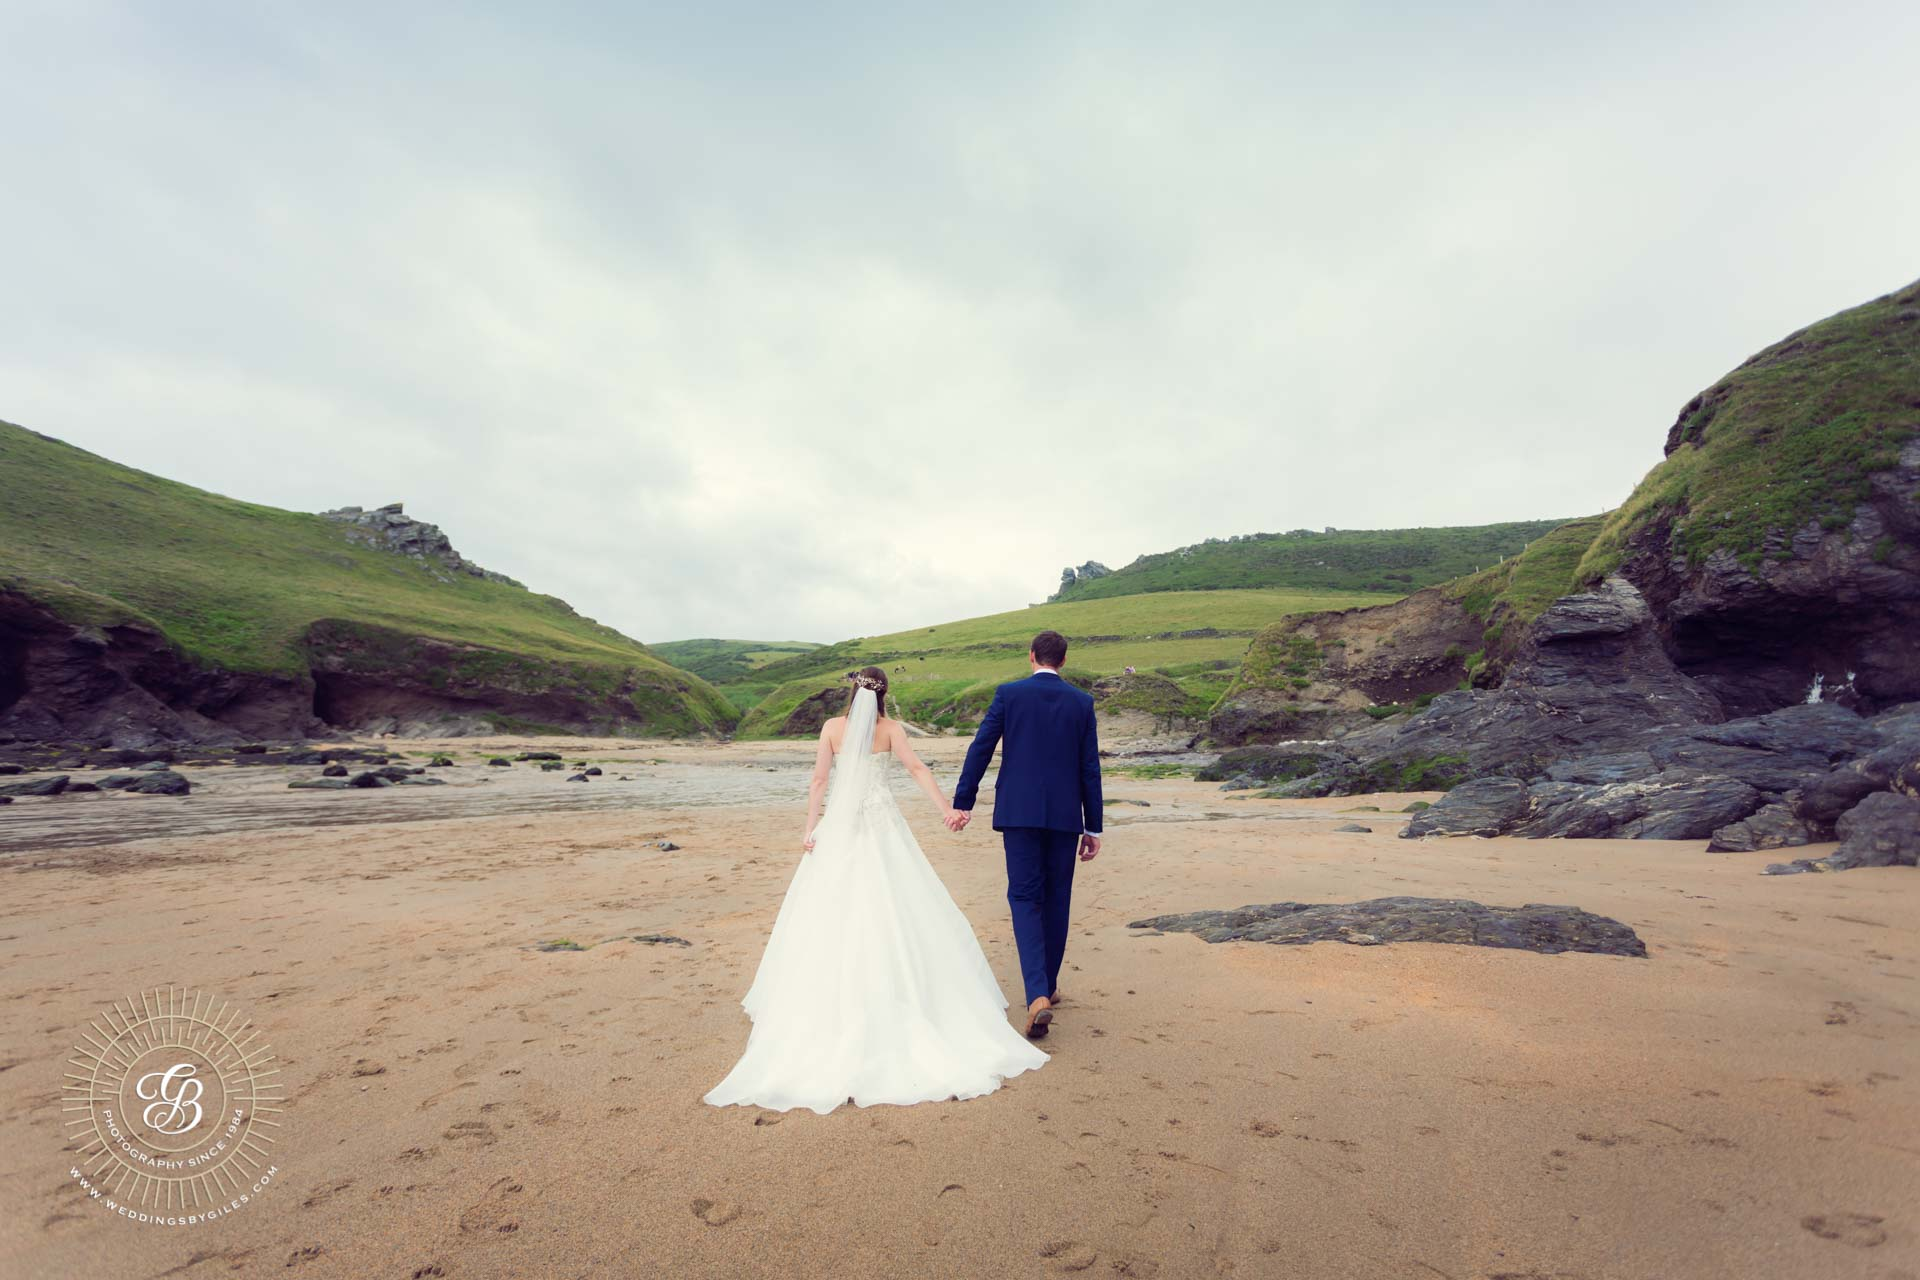 Bride and groom hand in hand on the beach